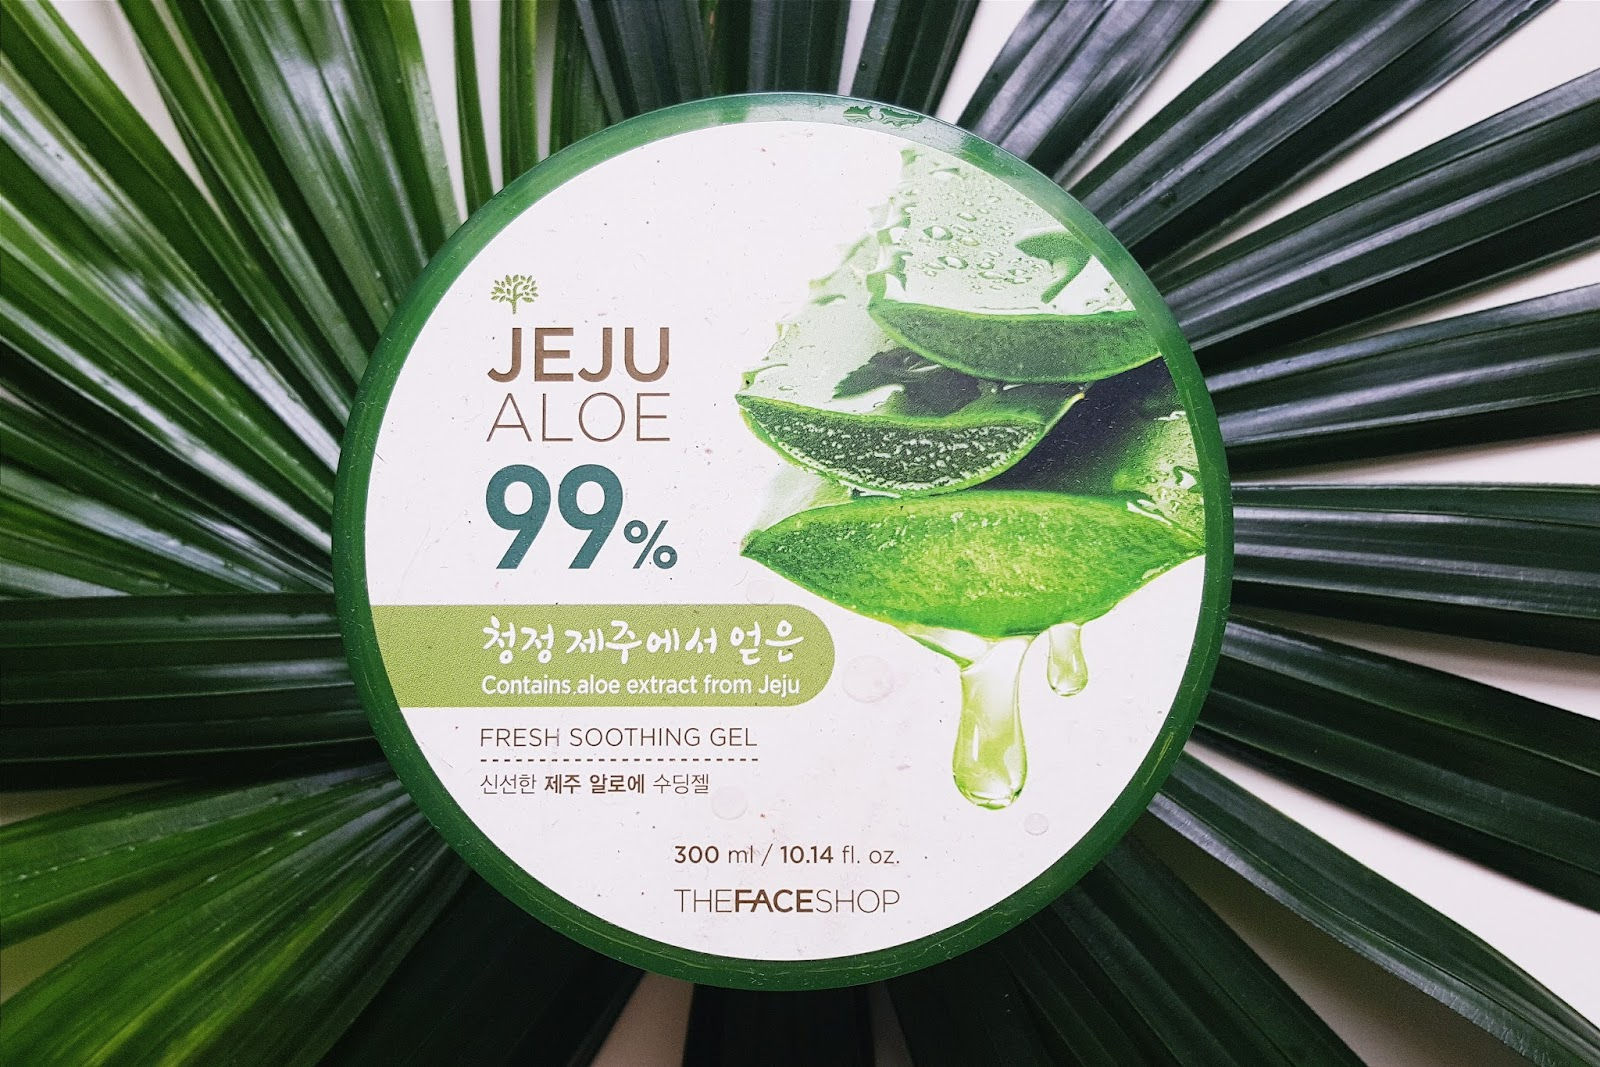 the face shop jeju aloe 99 fresh soothing gel review fishmeatdie. Black Bedroom Furniture Sets. Home Design Ideas